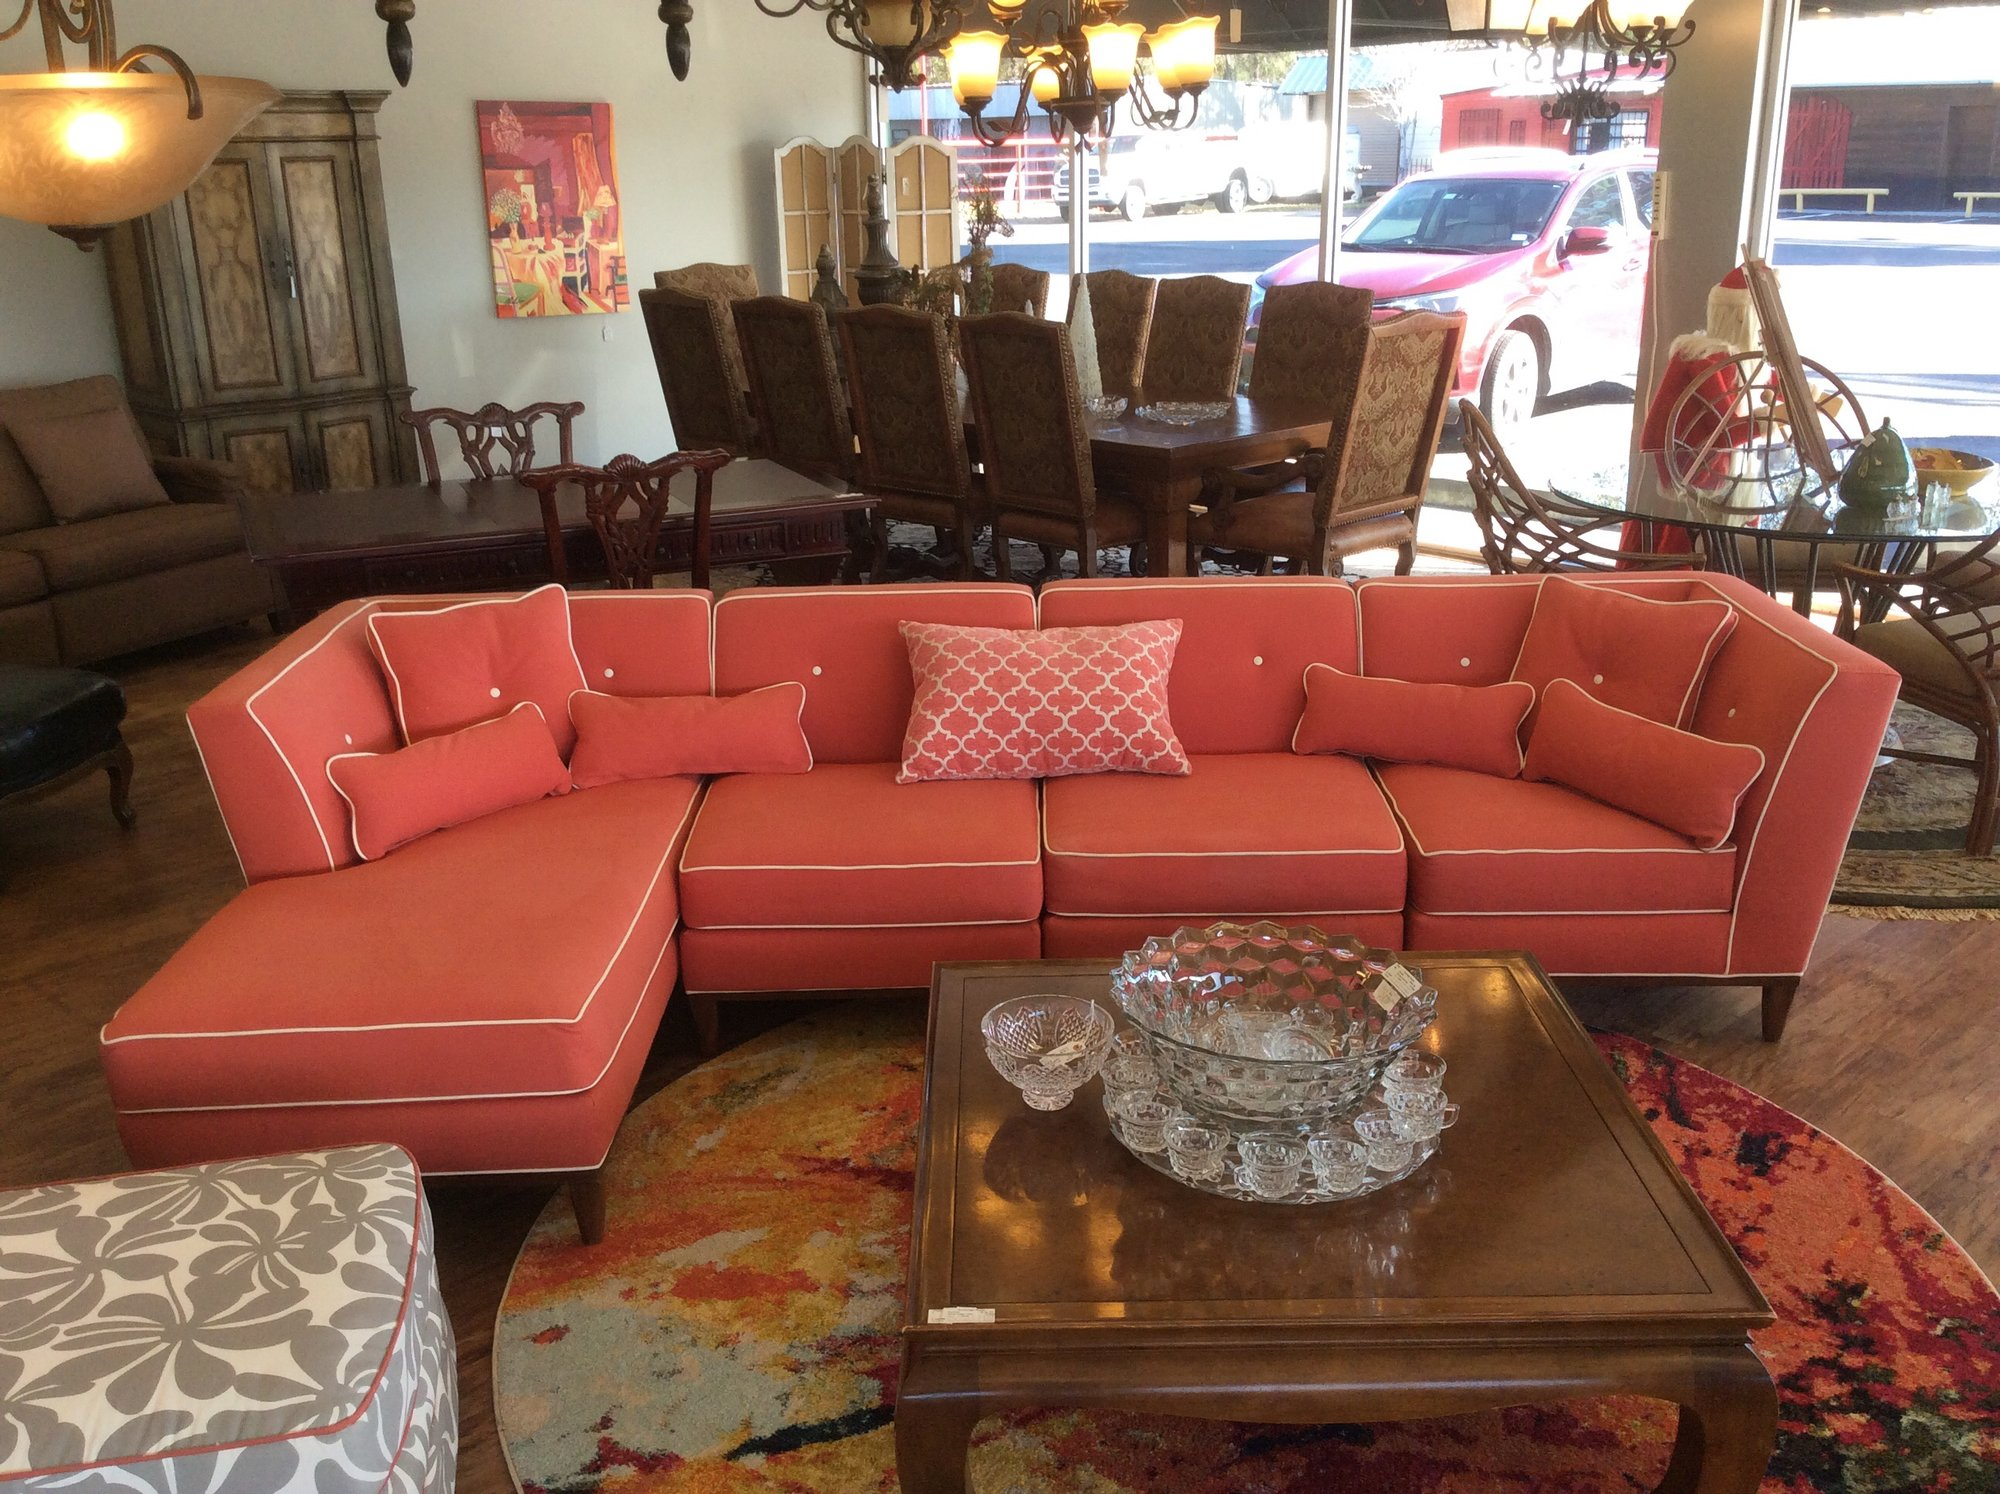 Oh my gosh, this is so FUN! This sectional sofa has 4 seperate pieces, so can be moved easily. The bright coral colored upholstery is a thick, sturdy denim-like fabric, and is in fabulous condition. Stop by and see it for yourself.